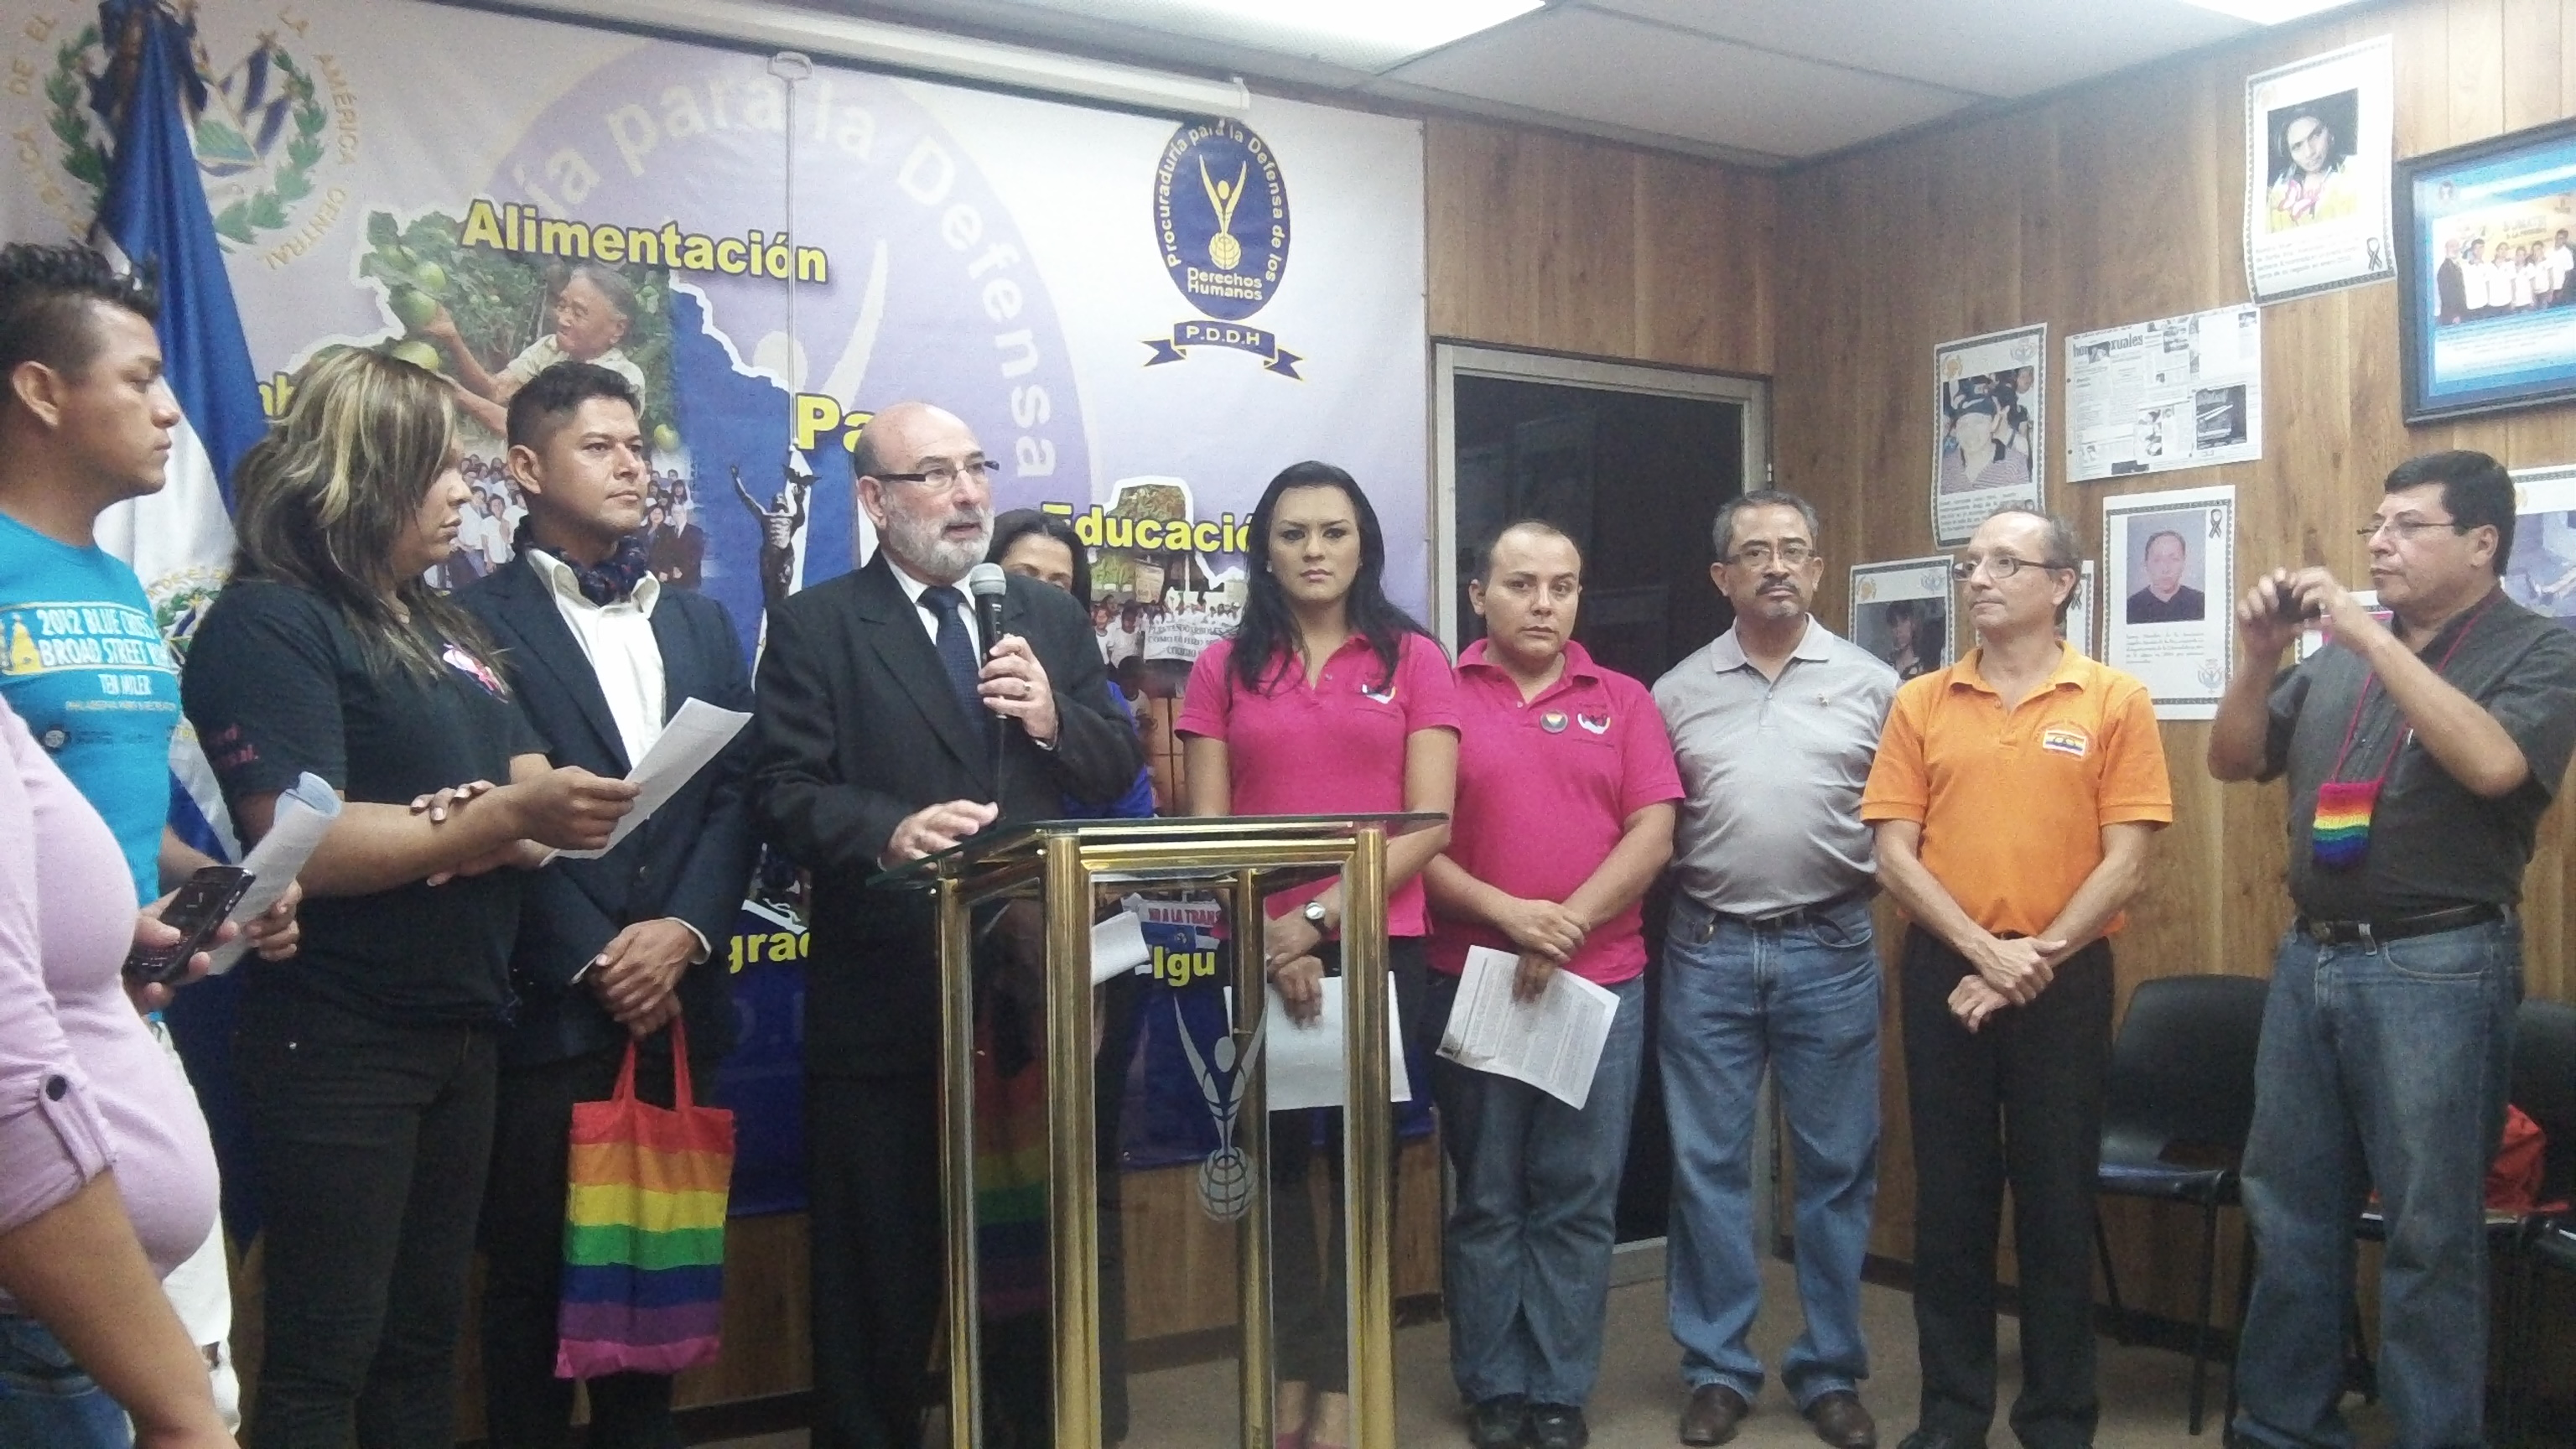 Former Human Rights Ombudsman Oscar Luna and sexual diversity activists give a press conference about impunity in assassinations of LGBTQ individuals on May 17, 2013. Photo source: Danielle Marie Mackey